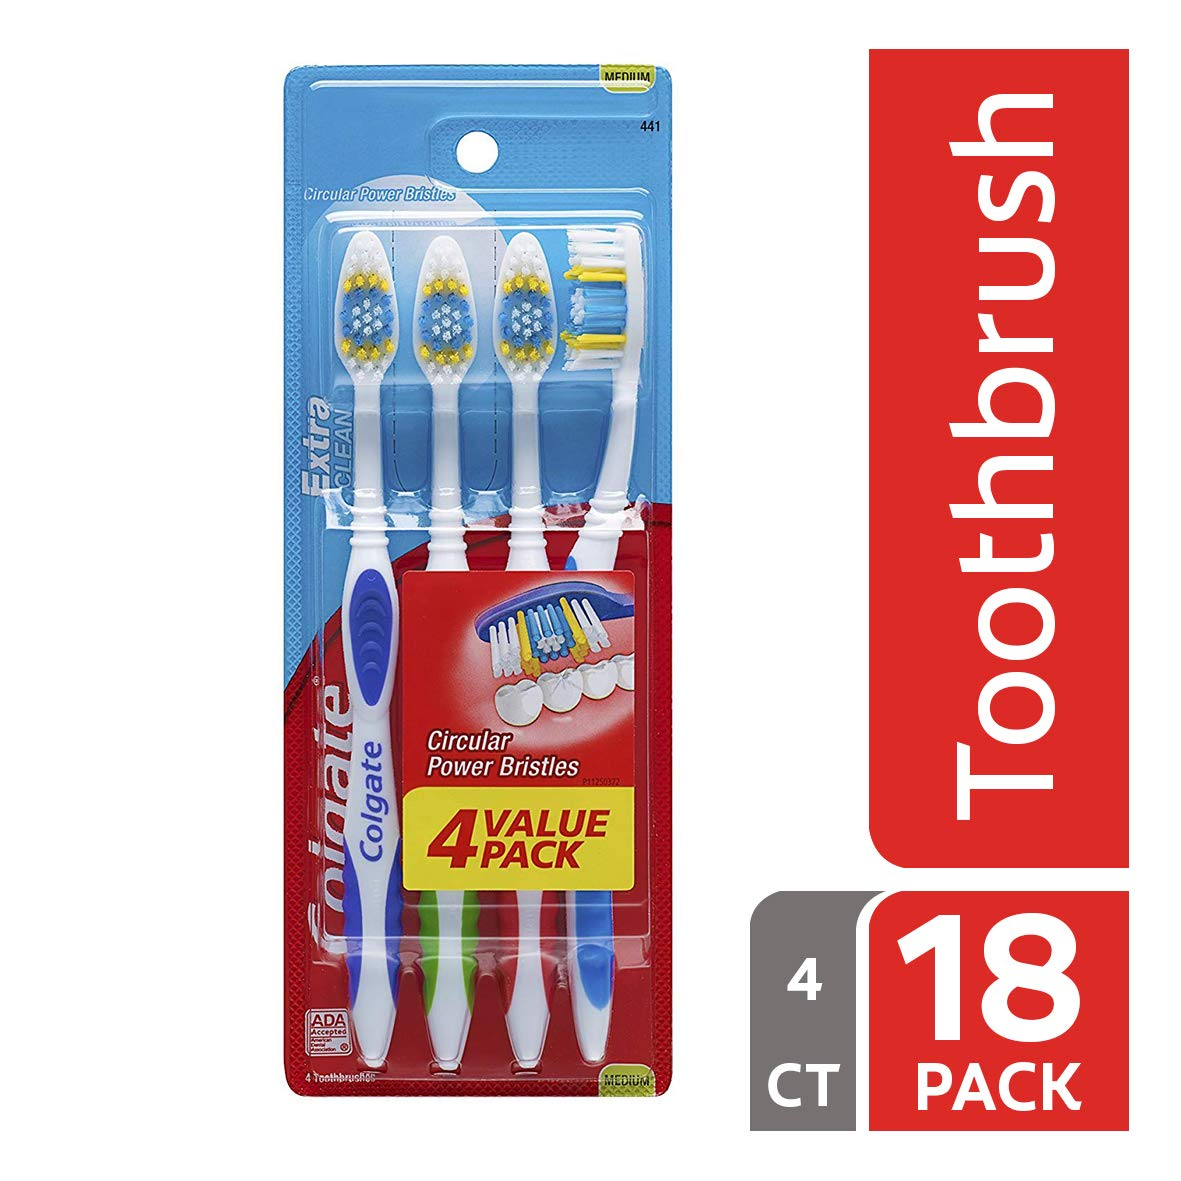 Colgate Extra Clean Full Head Toothbrush, Medium - 4 Count (Pack of 18) by Colgate